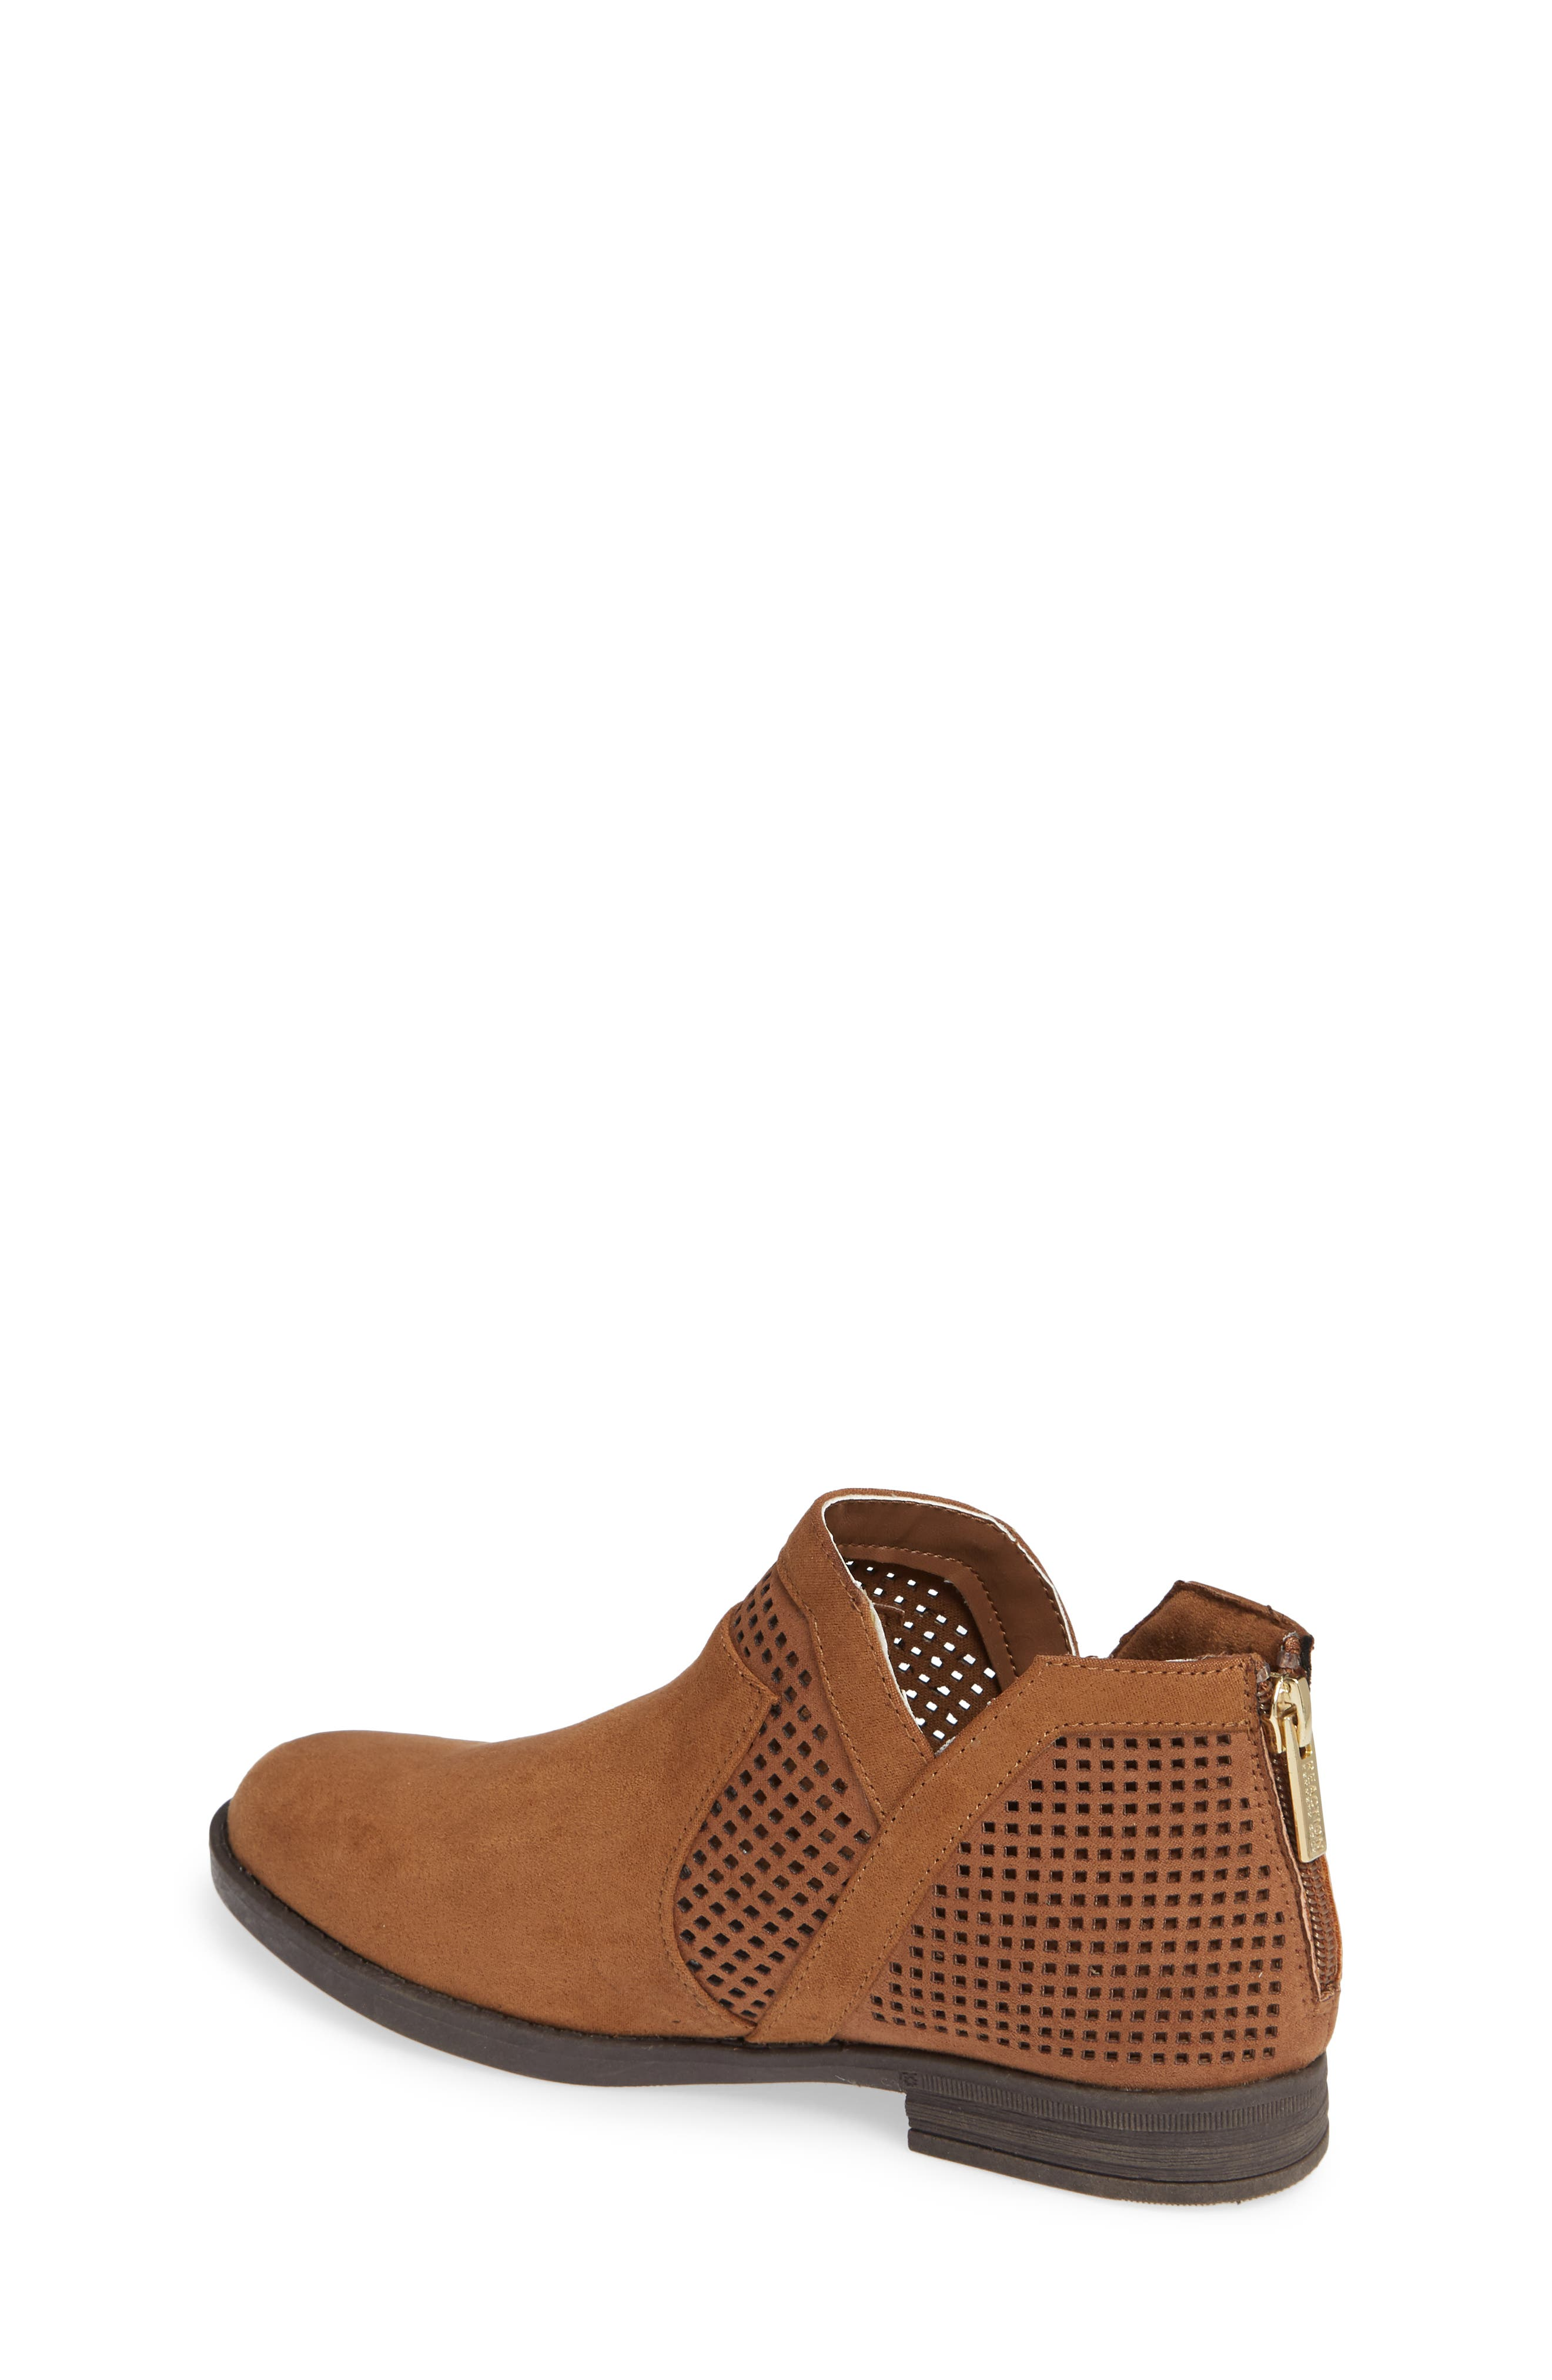 Wild Westy Perforated Bootie,                             Alternate thumbnail 2, color,                             206